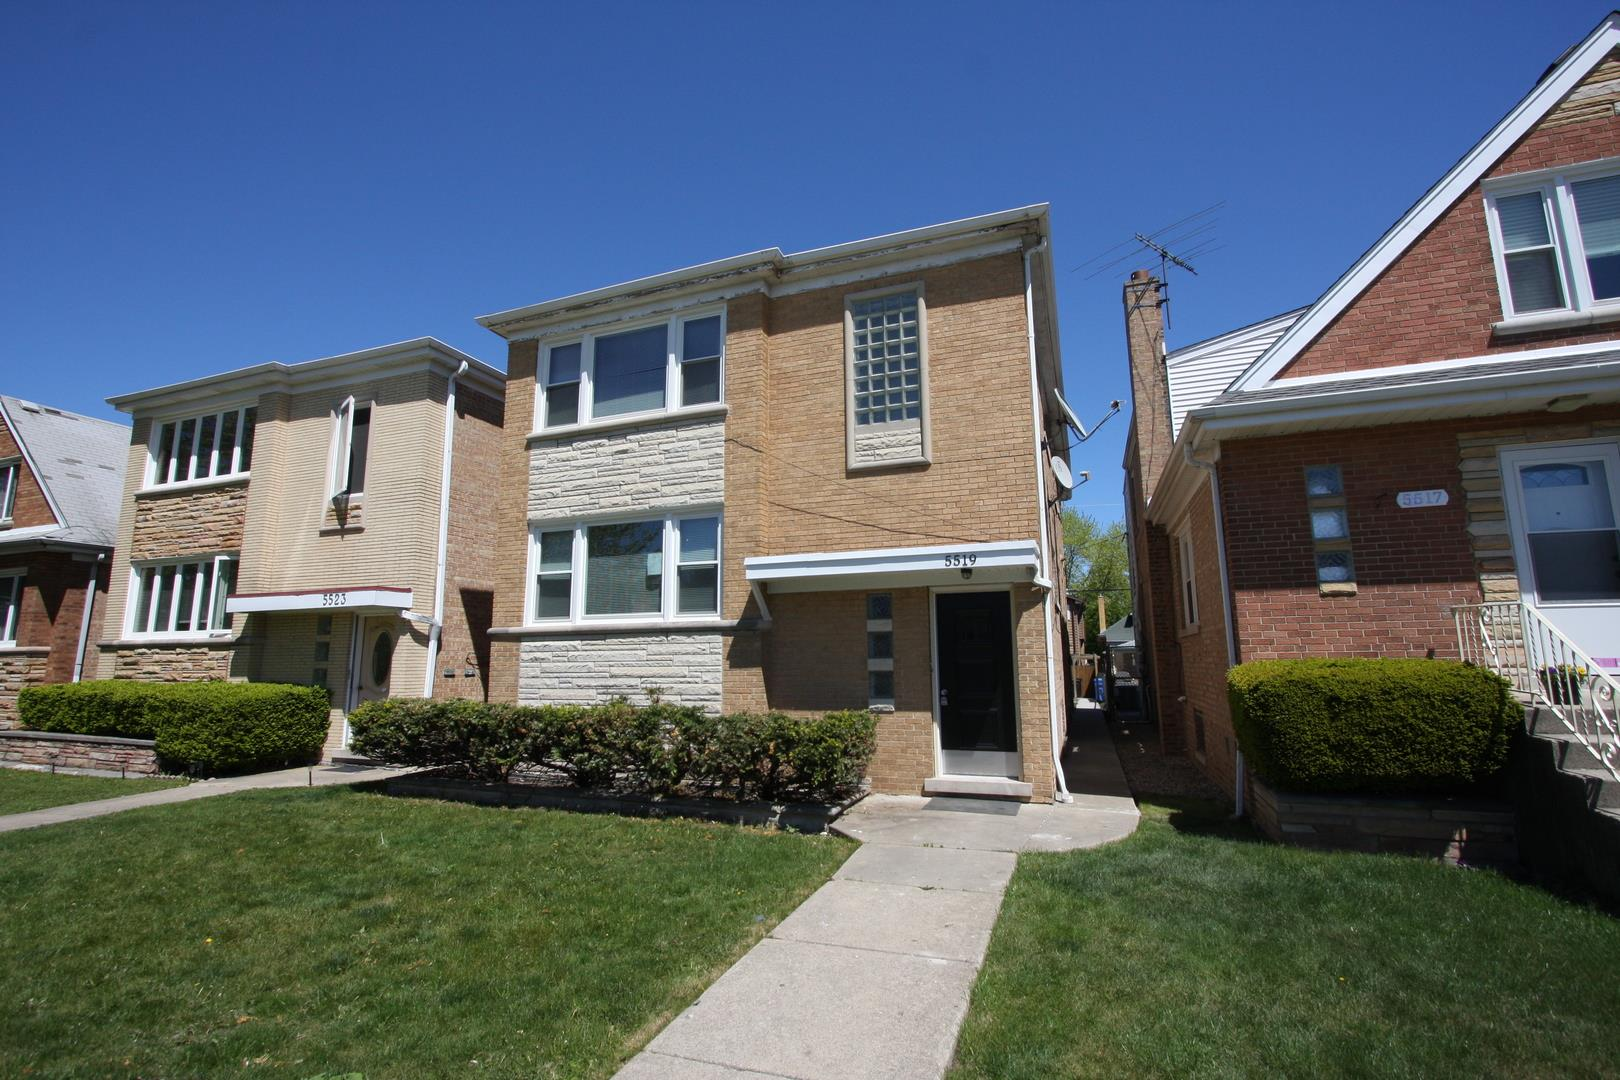 5519 N major Avenue, Chicago, IL 60630 - #: 11077702